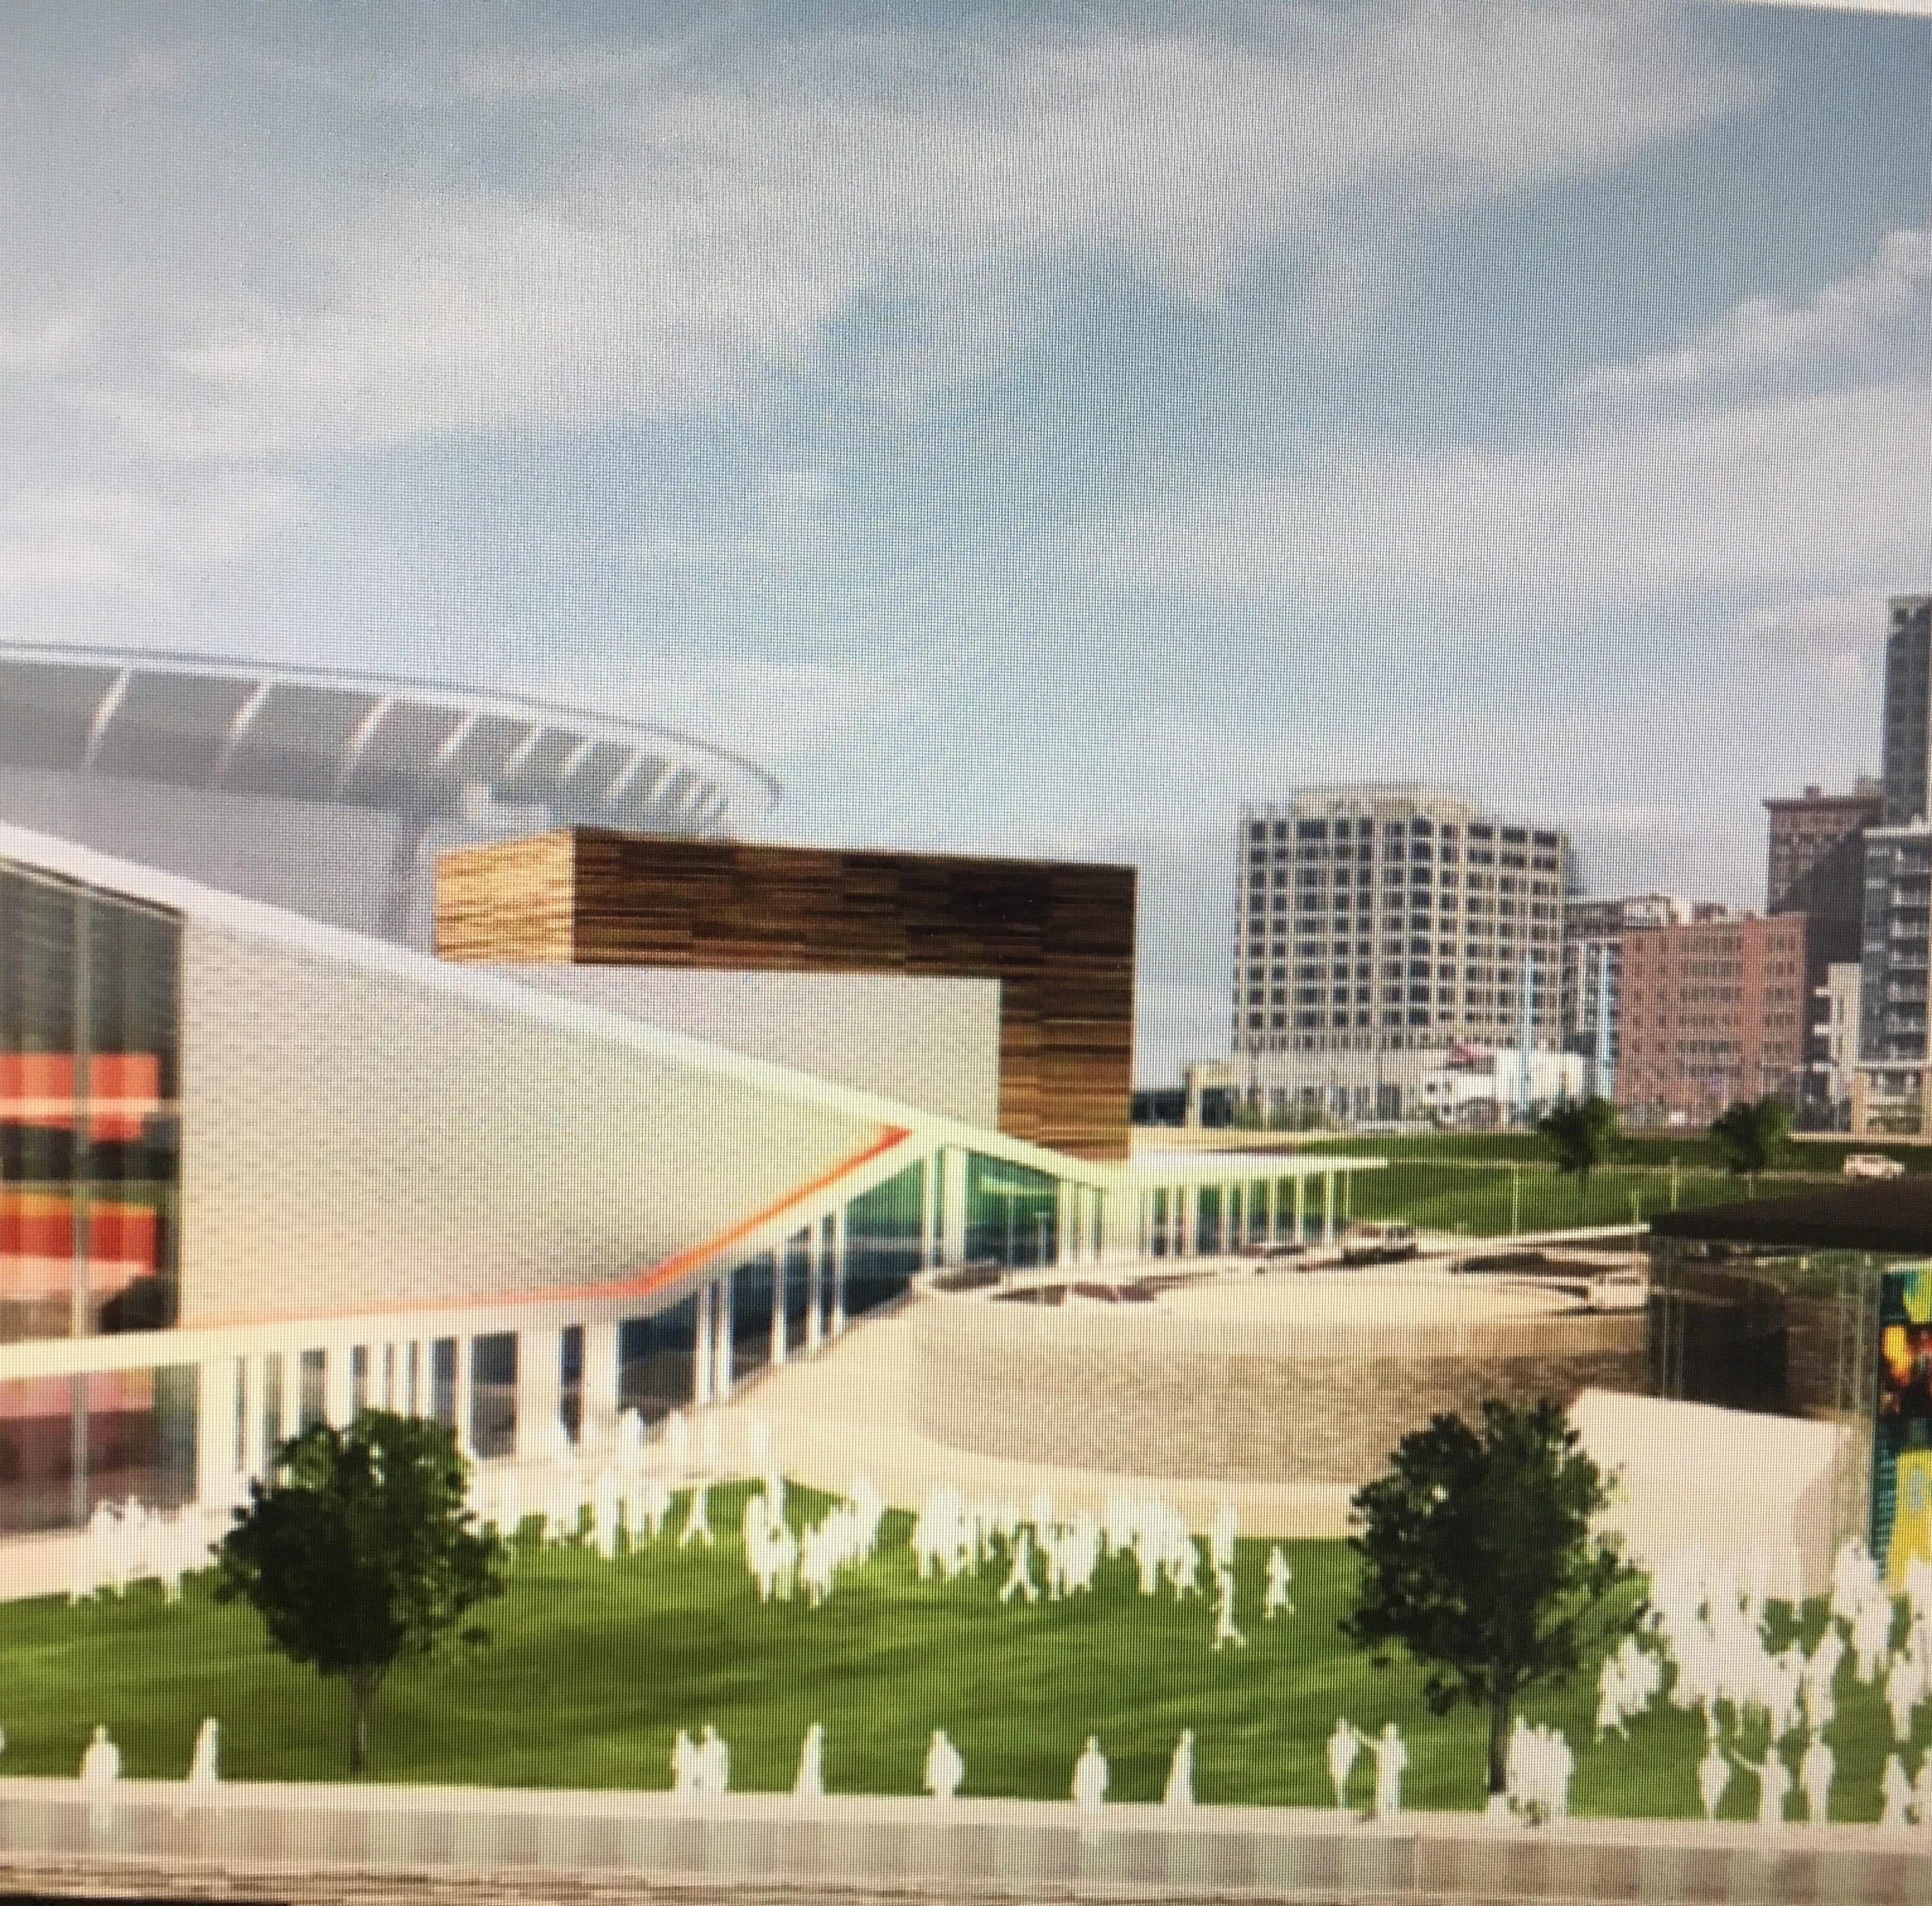 City, county to invest $29.3M to support Banks' music venue